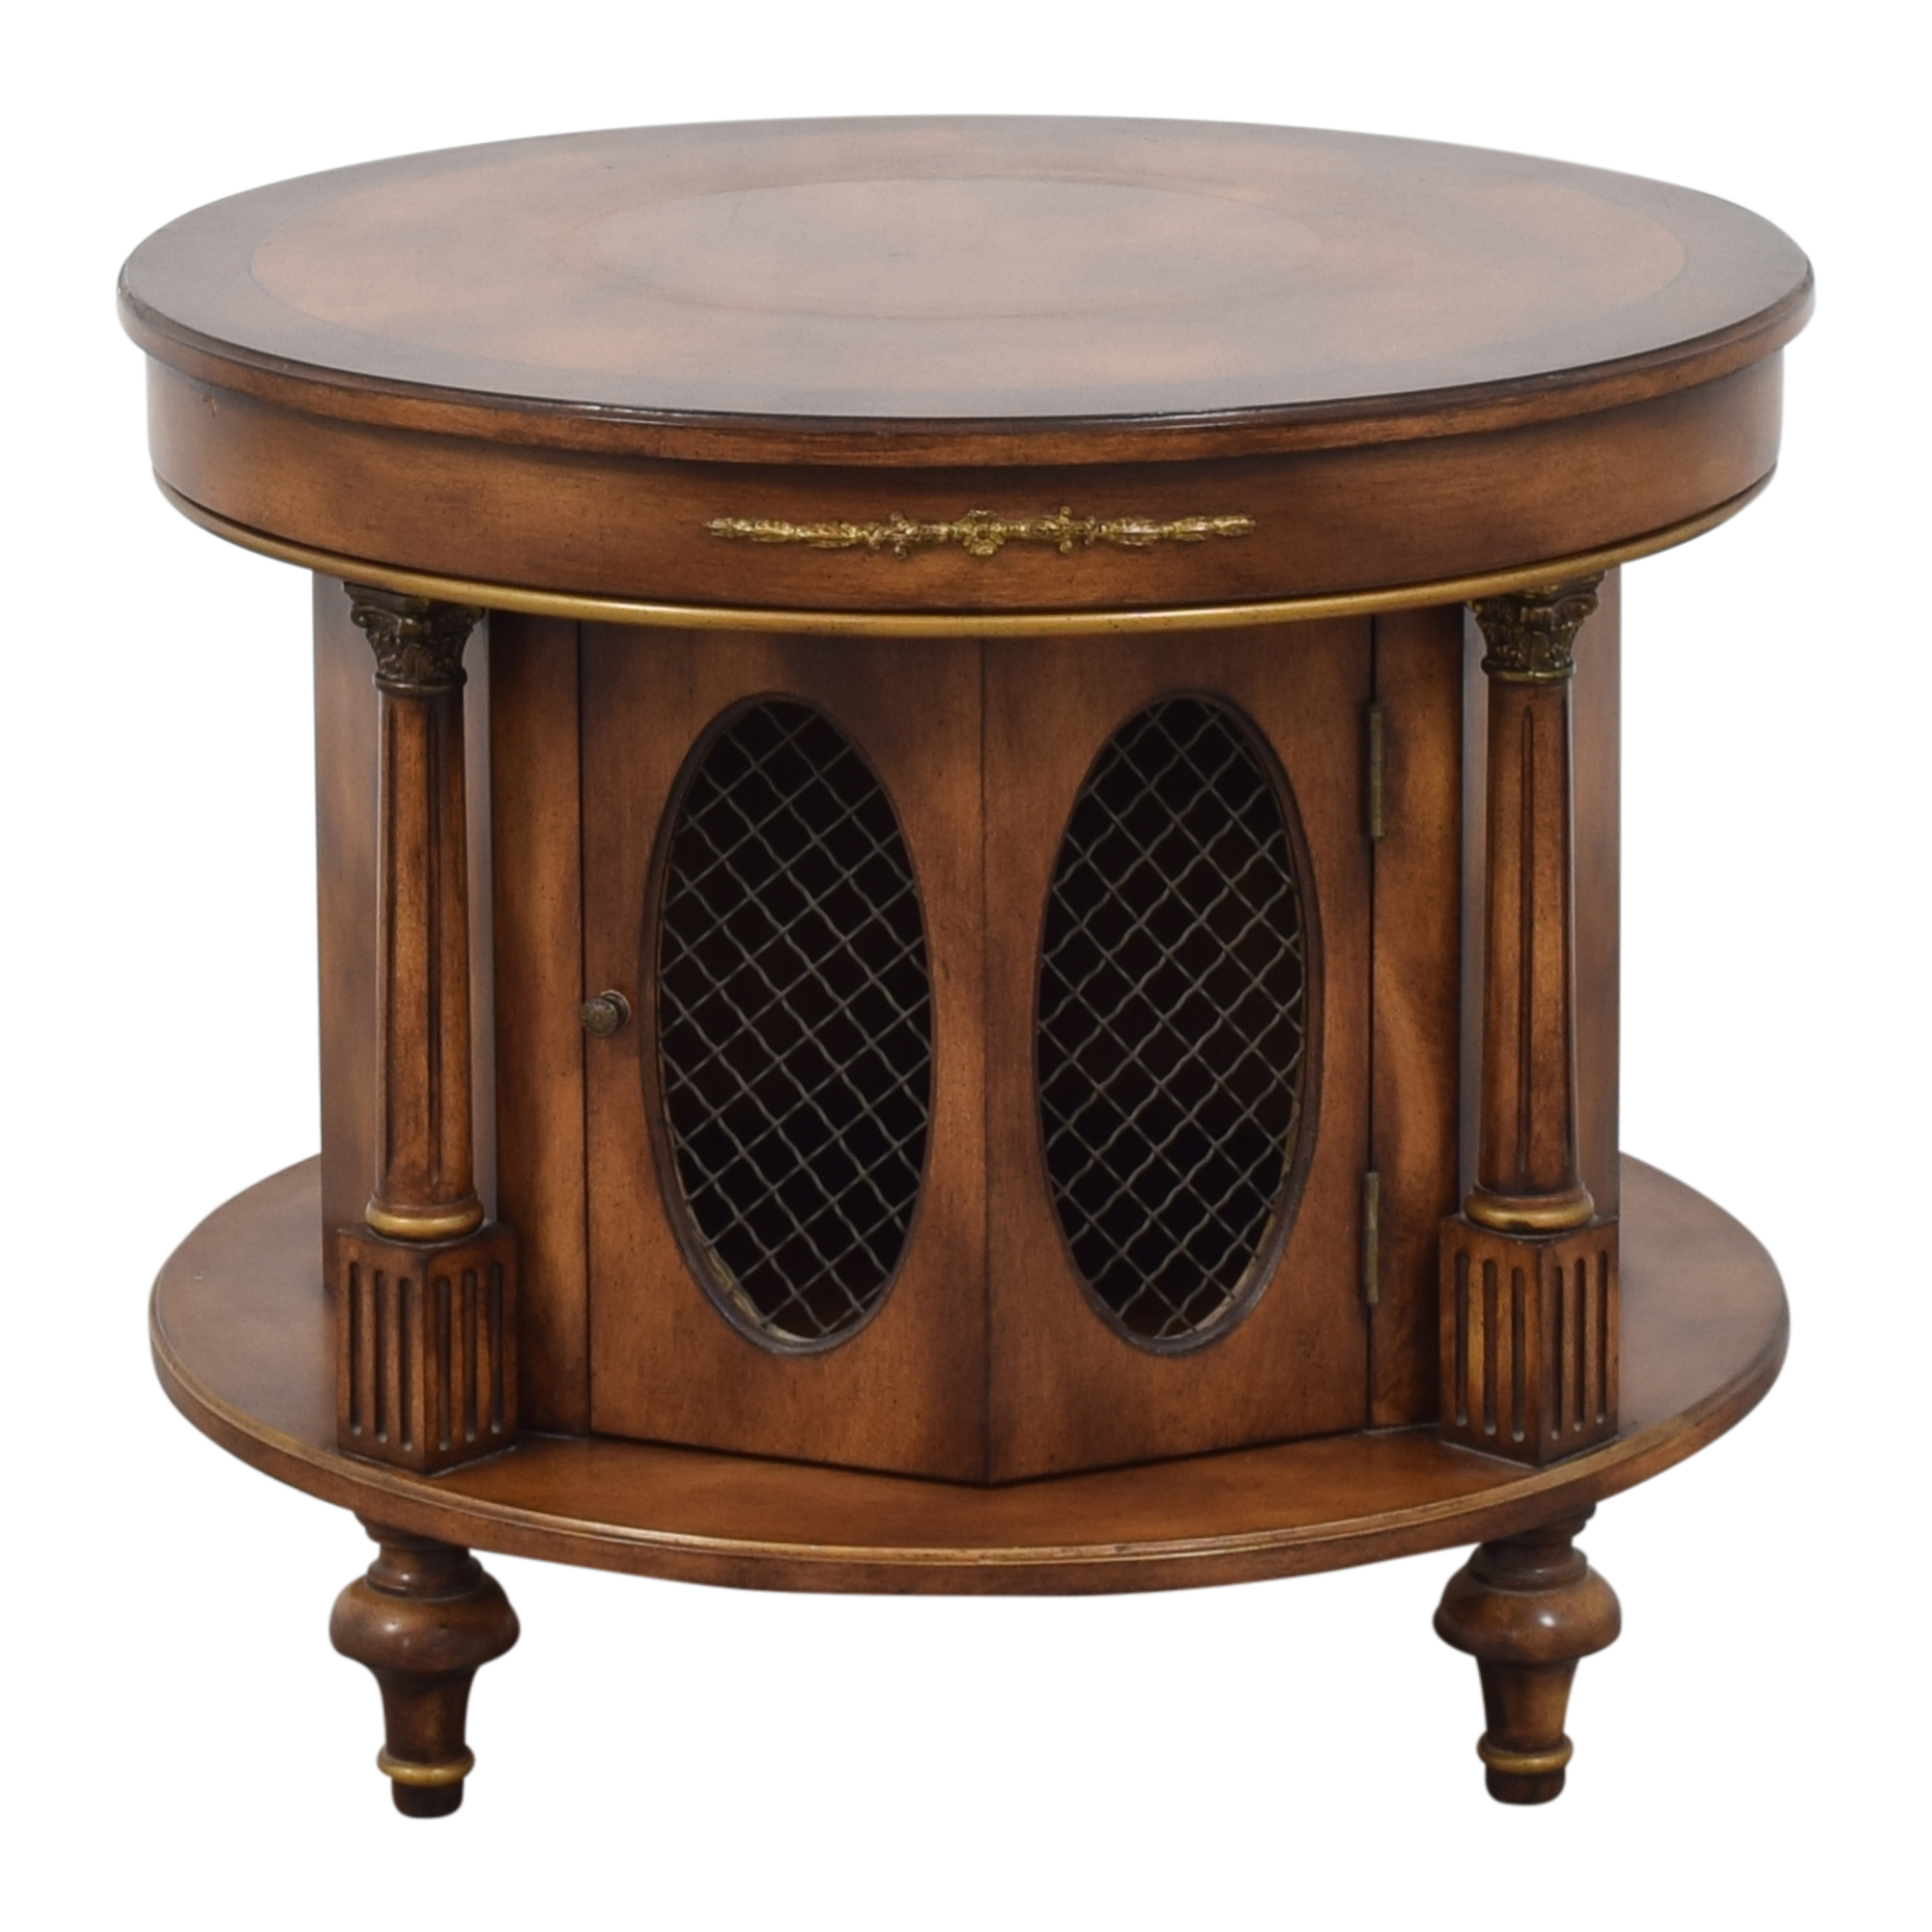 Round Accent Cabinet / Tables